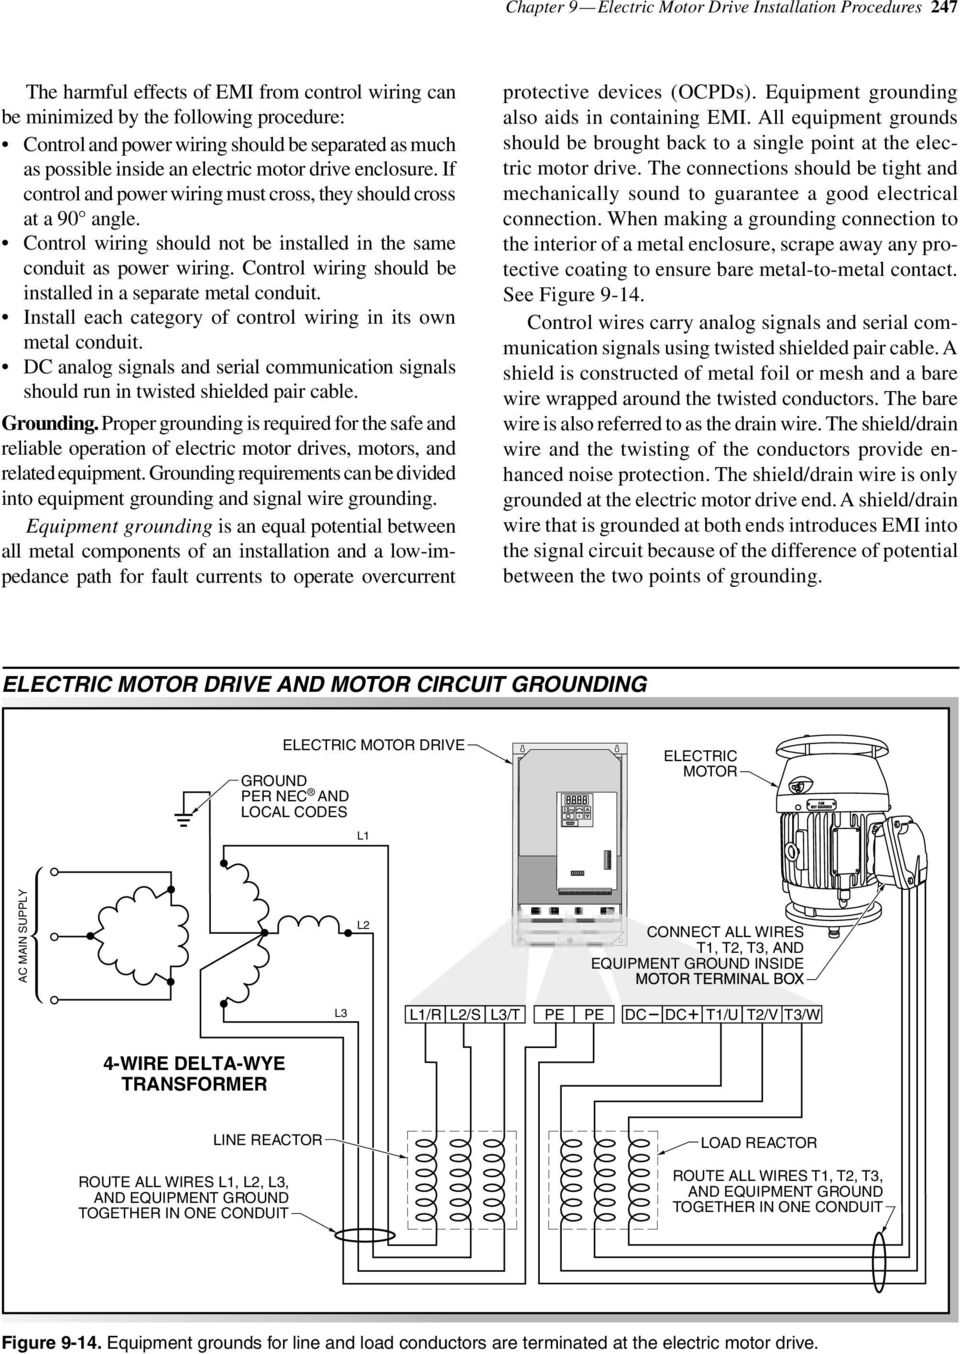 Installation Considerations Pdf Ac Motor Circuit Control Wiring Should Not Be Installed In The Same Conduit As Power